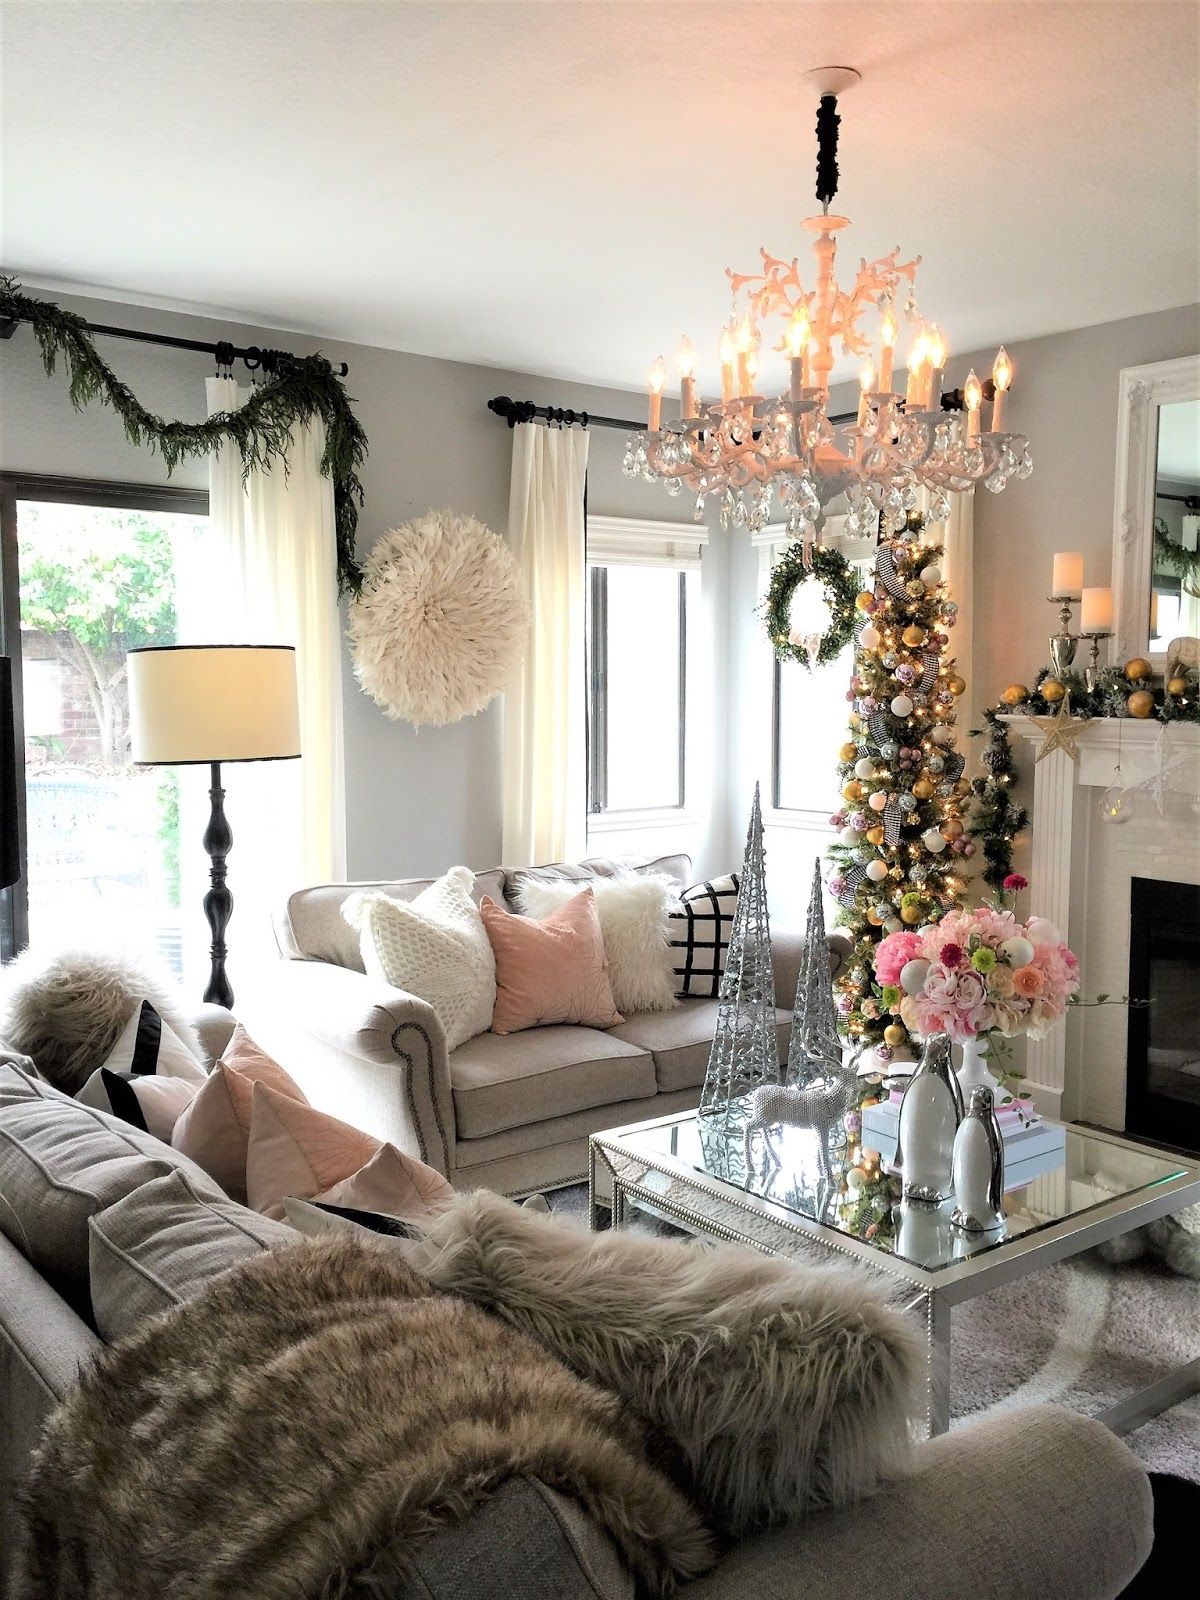 Novel Couchtisch Hamilton Home For The Holidays Blog Tour Home Fabulous Style Holidays